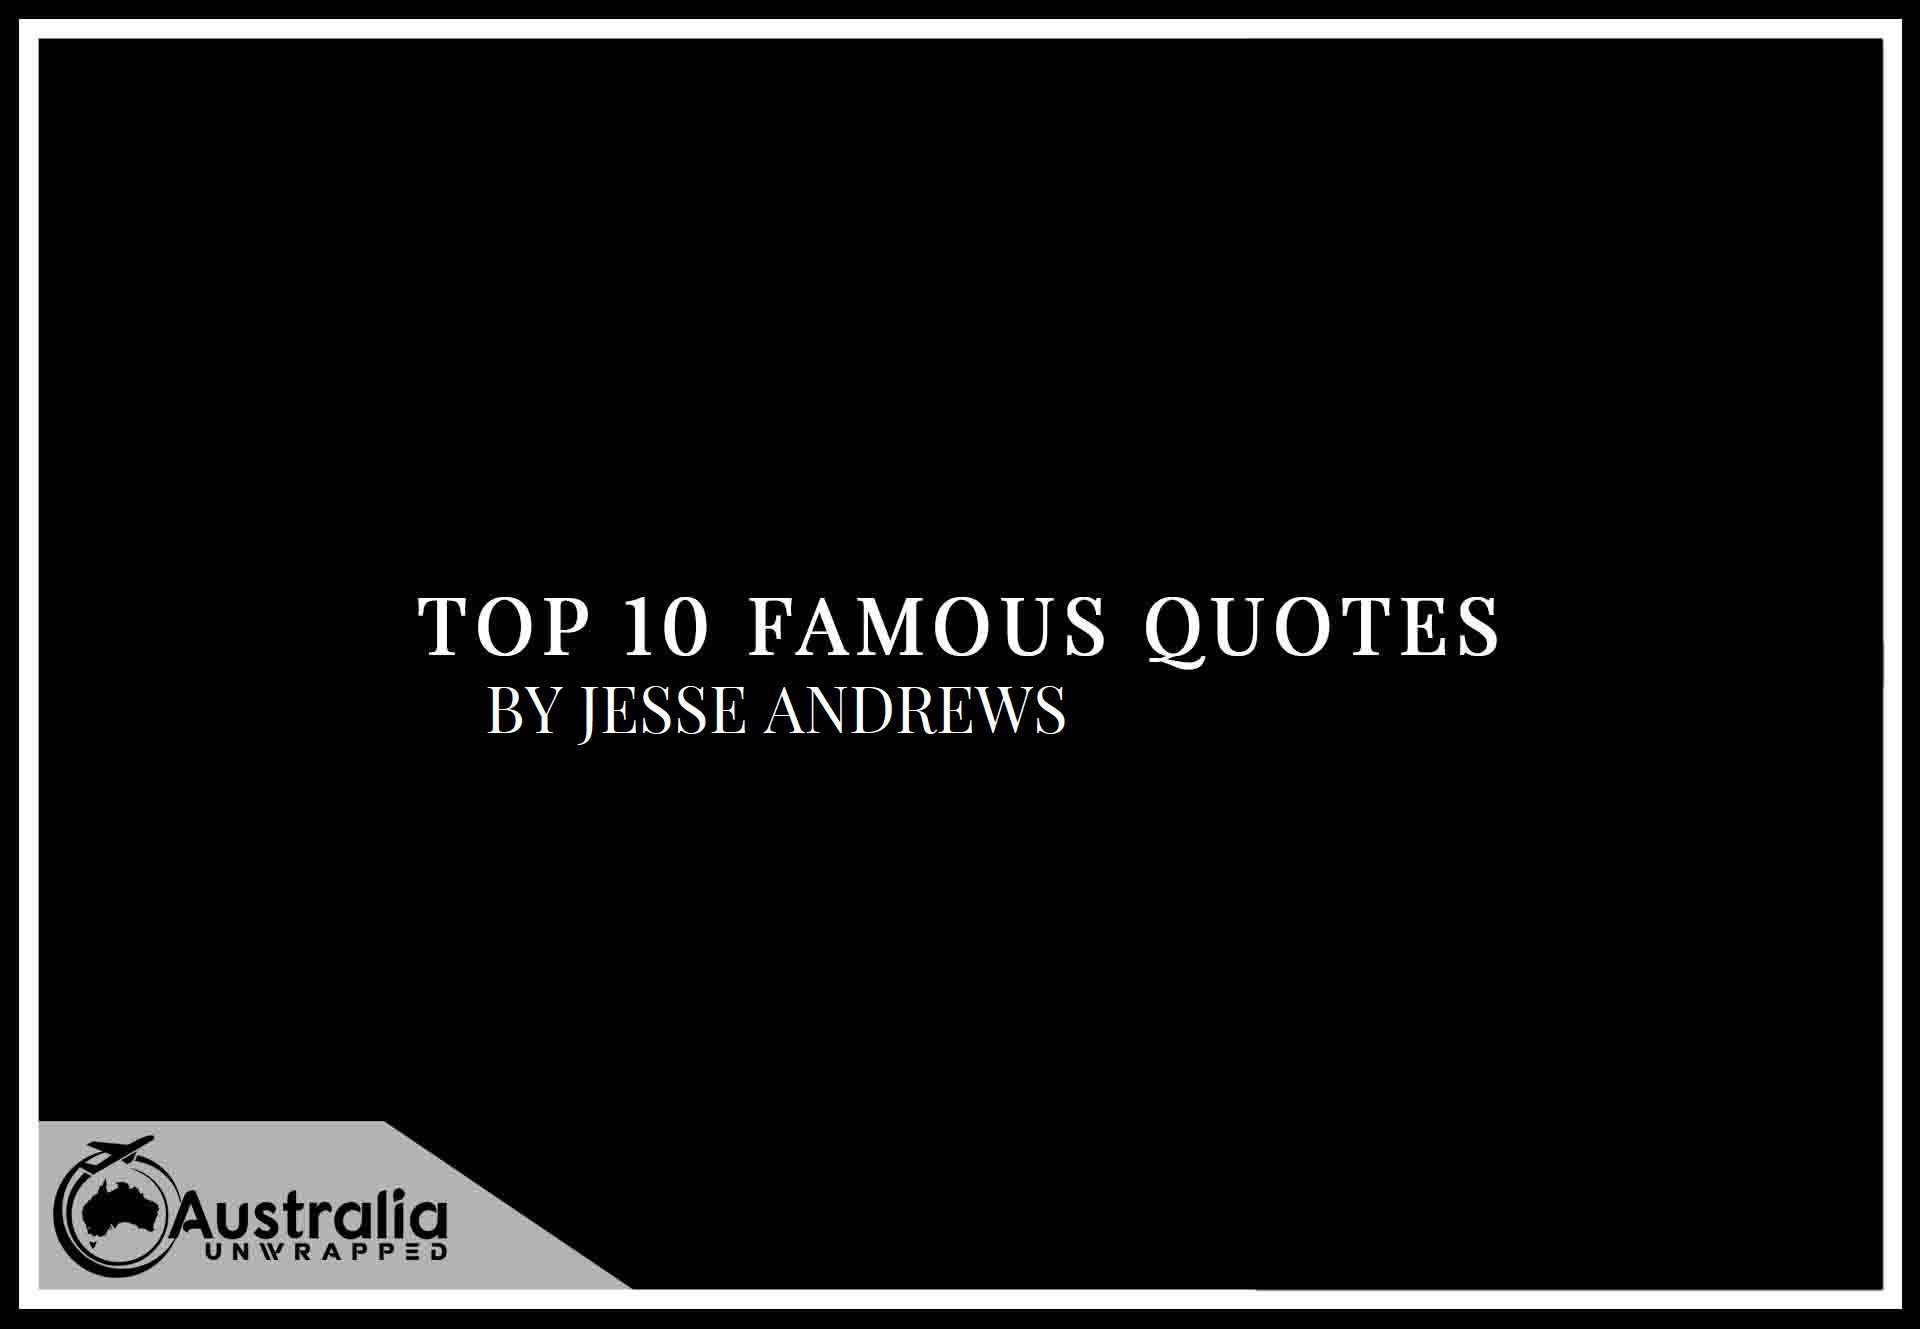 Top 10 Famous Quotes by Author Jesse Andrews